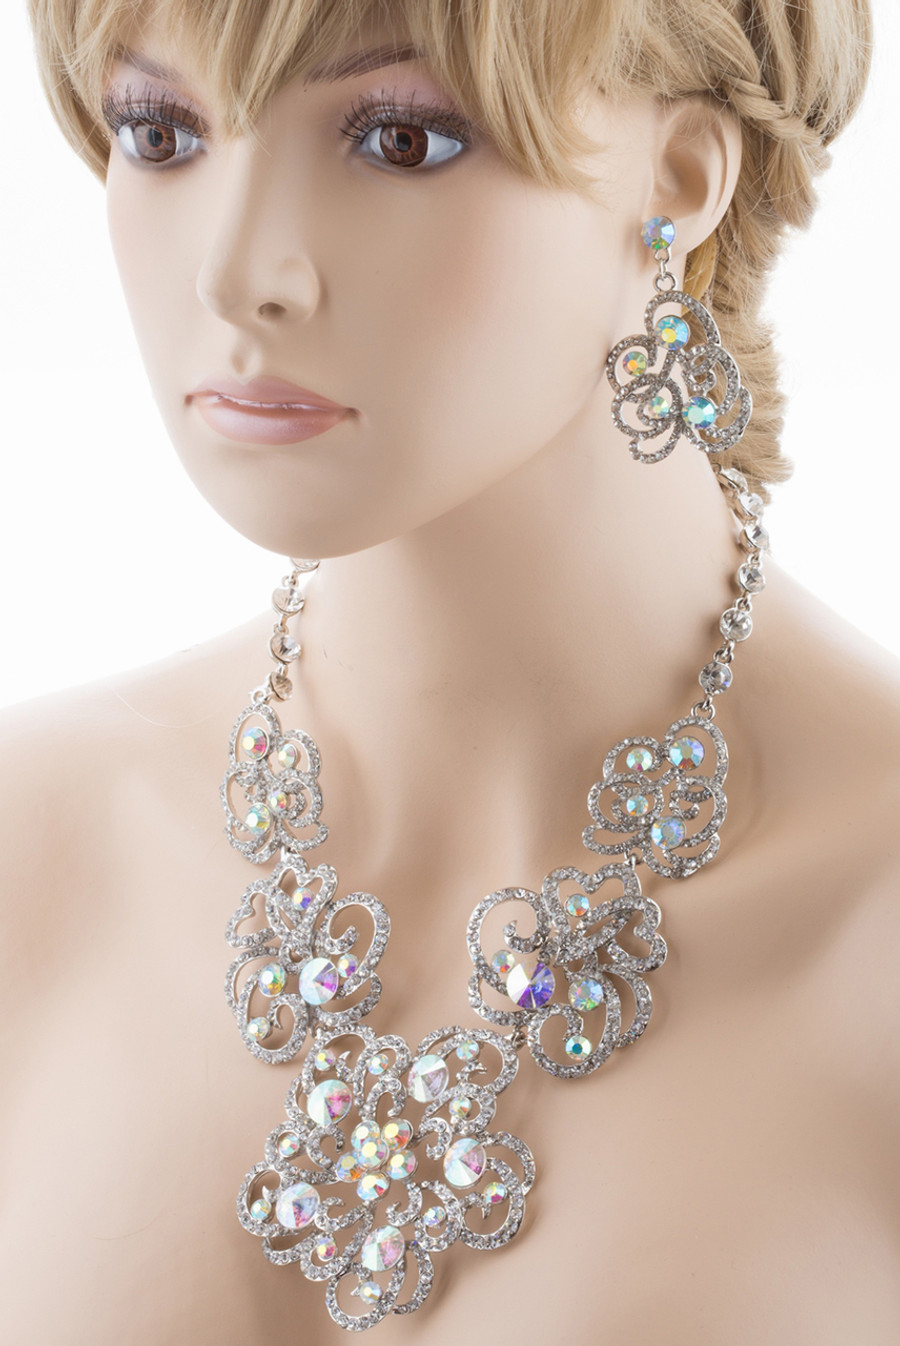 Bridal Wedding Jewelry Set Crystal Rhinestone Chunky Floral Necklace Silver AB